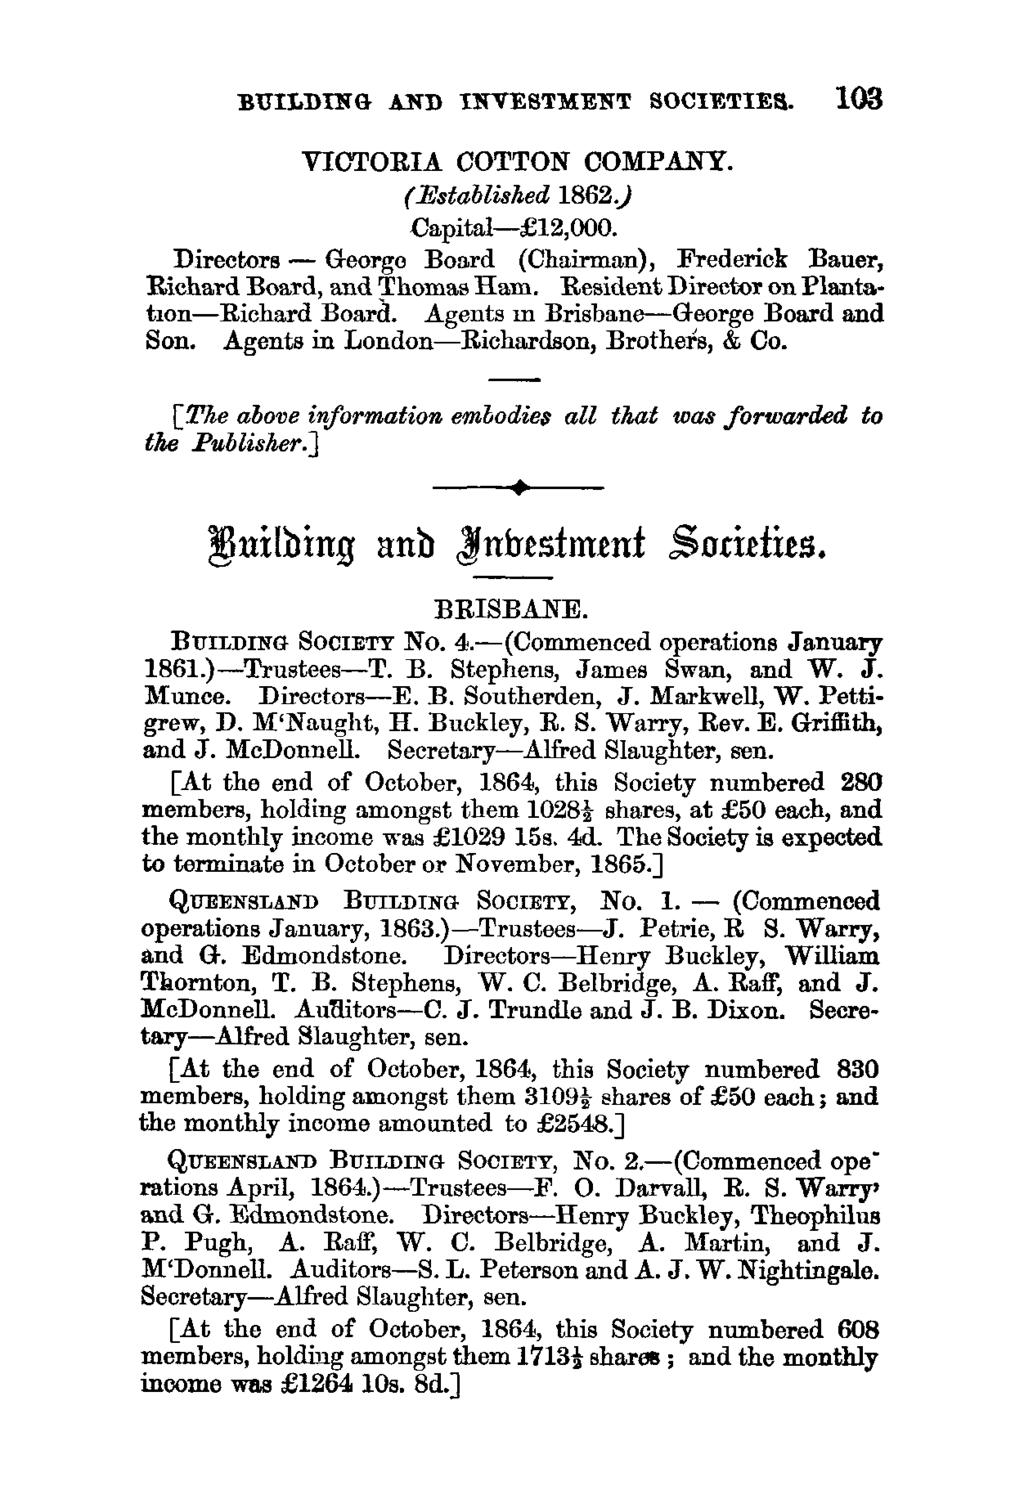 BUILDING AND INVESTMENT SOCIETIES. 103 VICTORIA COTTON COMPANY. (Established 1862.) Capital- 12,000. Directors - George Board (Chairman), Frederick Bauer, Richard Board, and Thomas Ham.